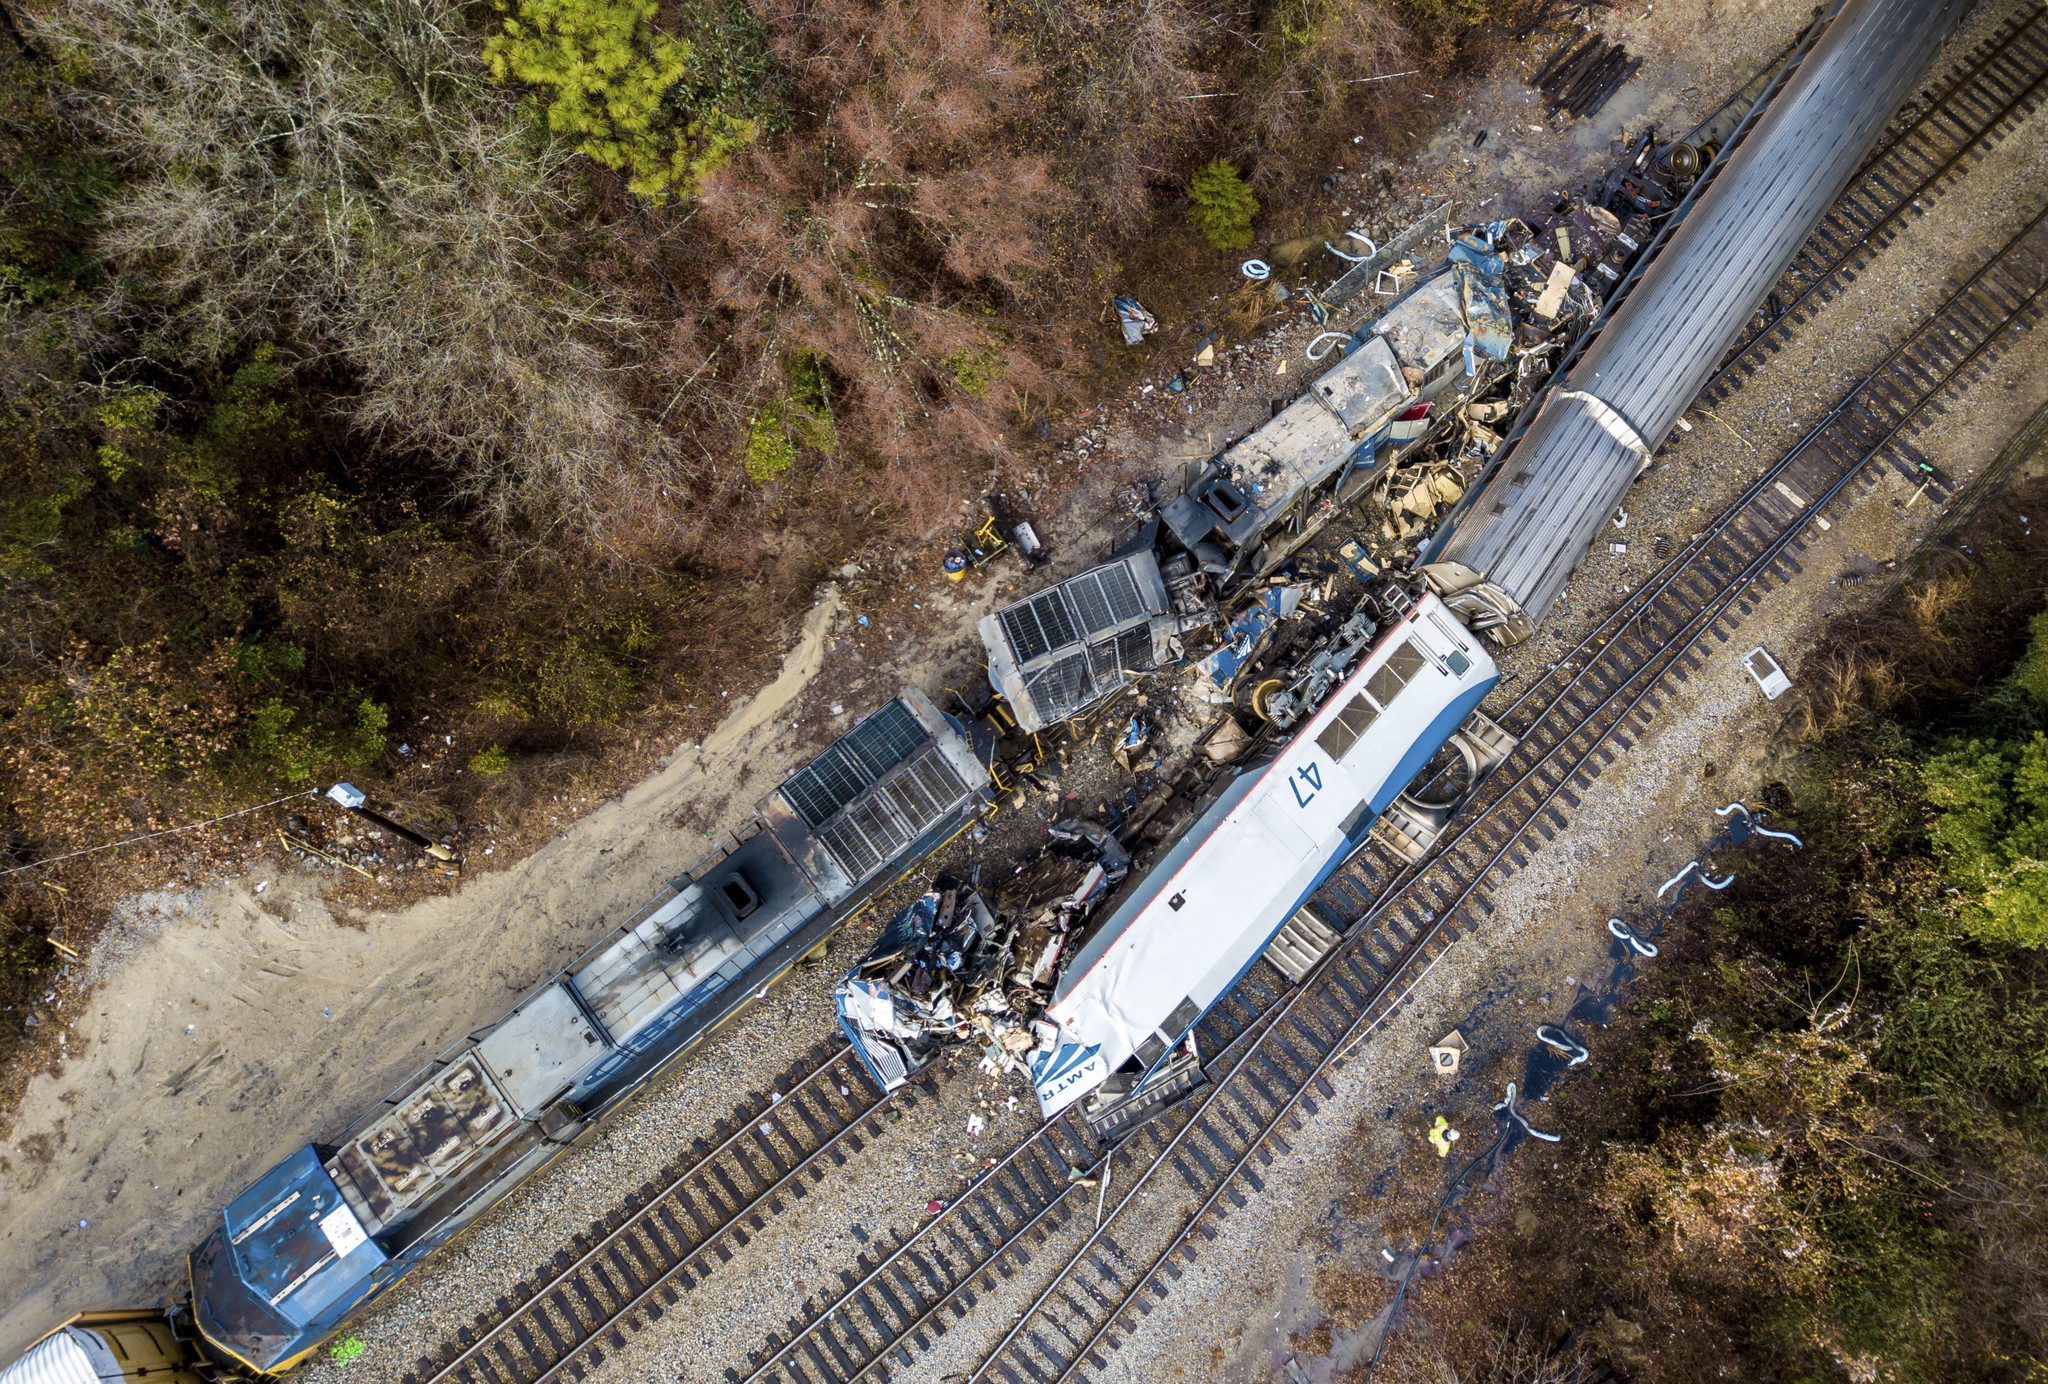 After decade of delays rail safety system that could have prevented